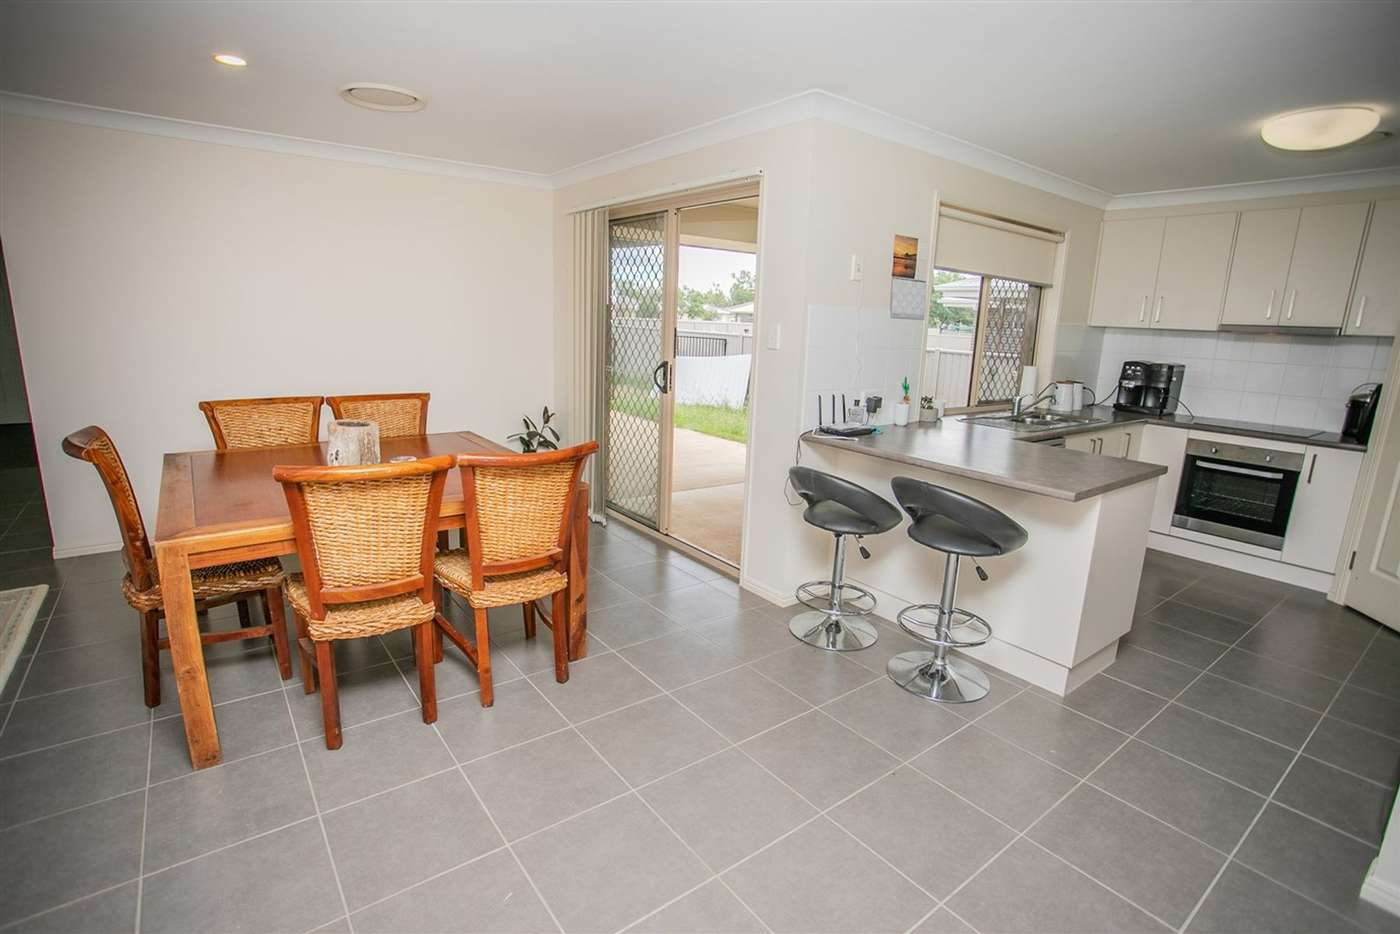 Sixth view of Homely house listing, 18 Sheridan Street, Chinchilla QLD 4413